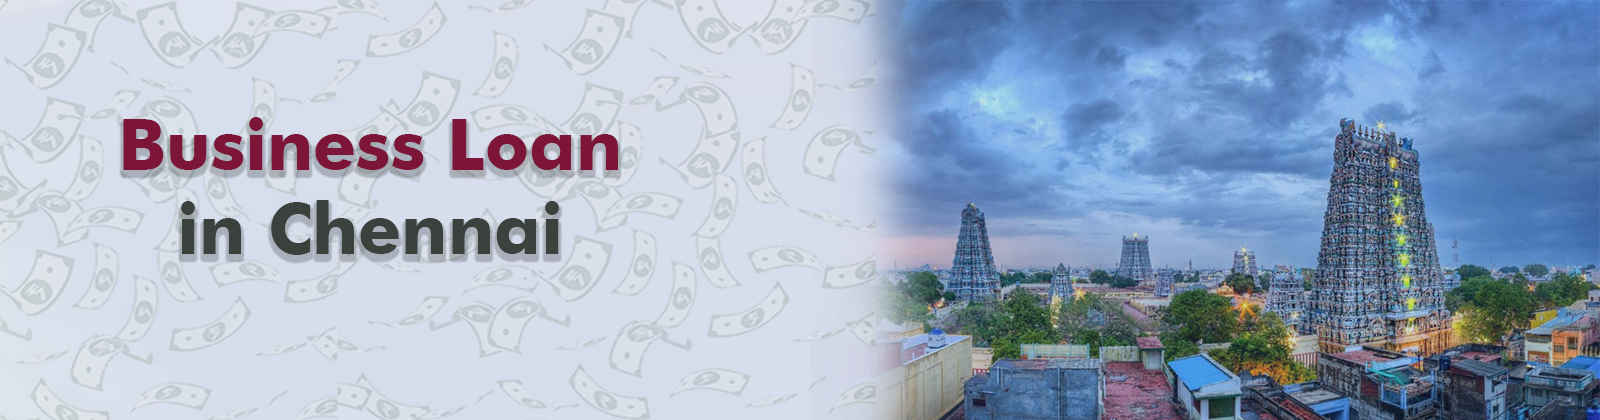 Business Loan in Chennai